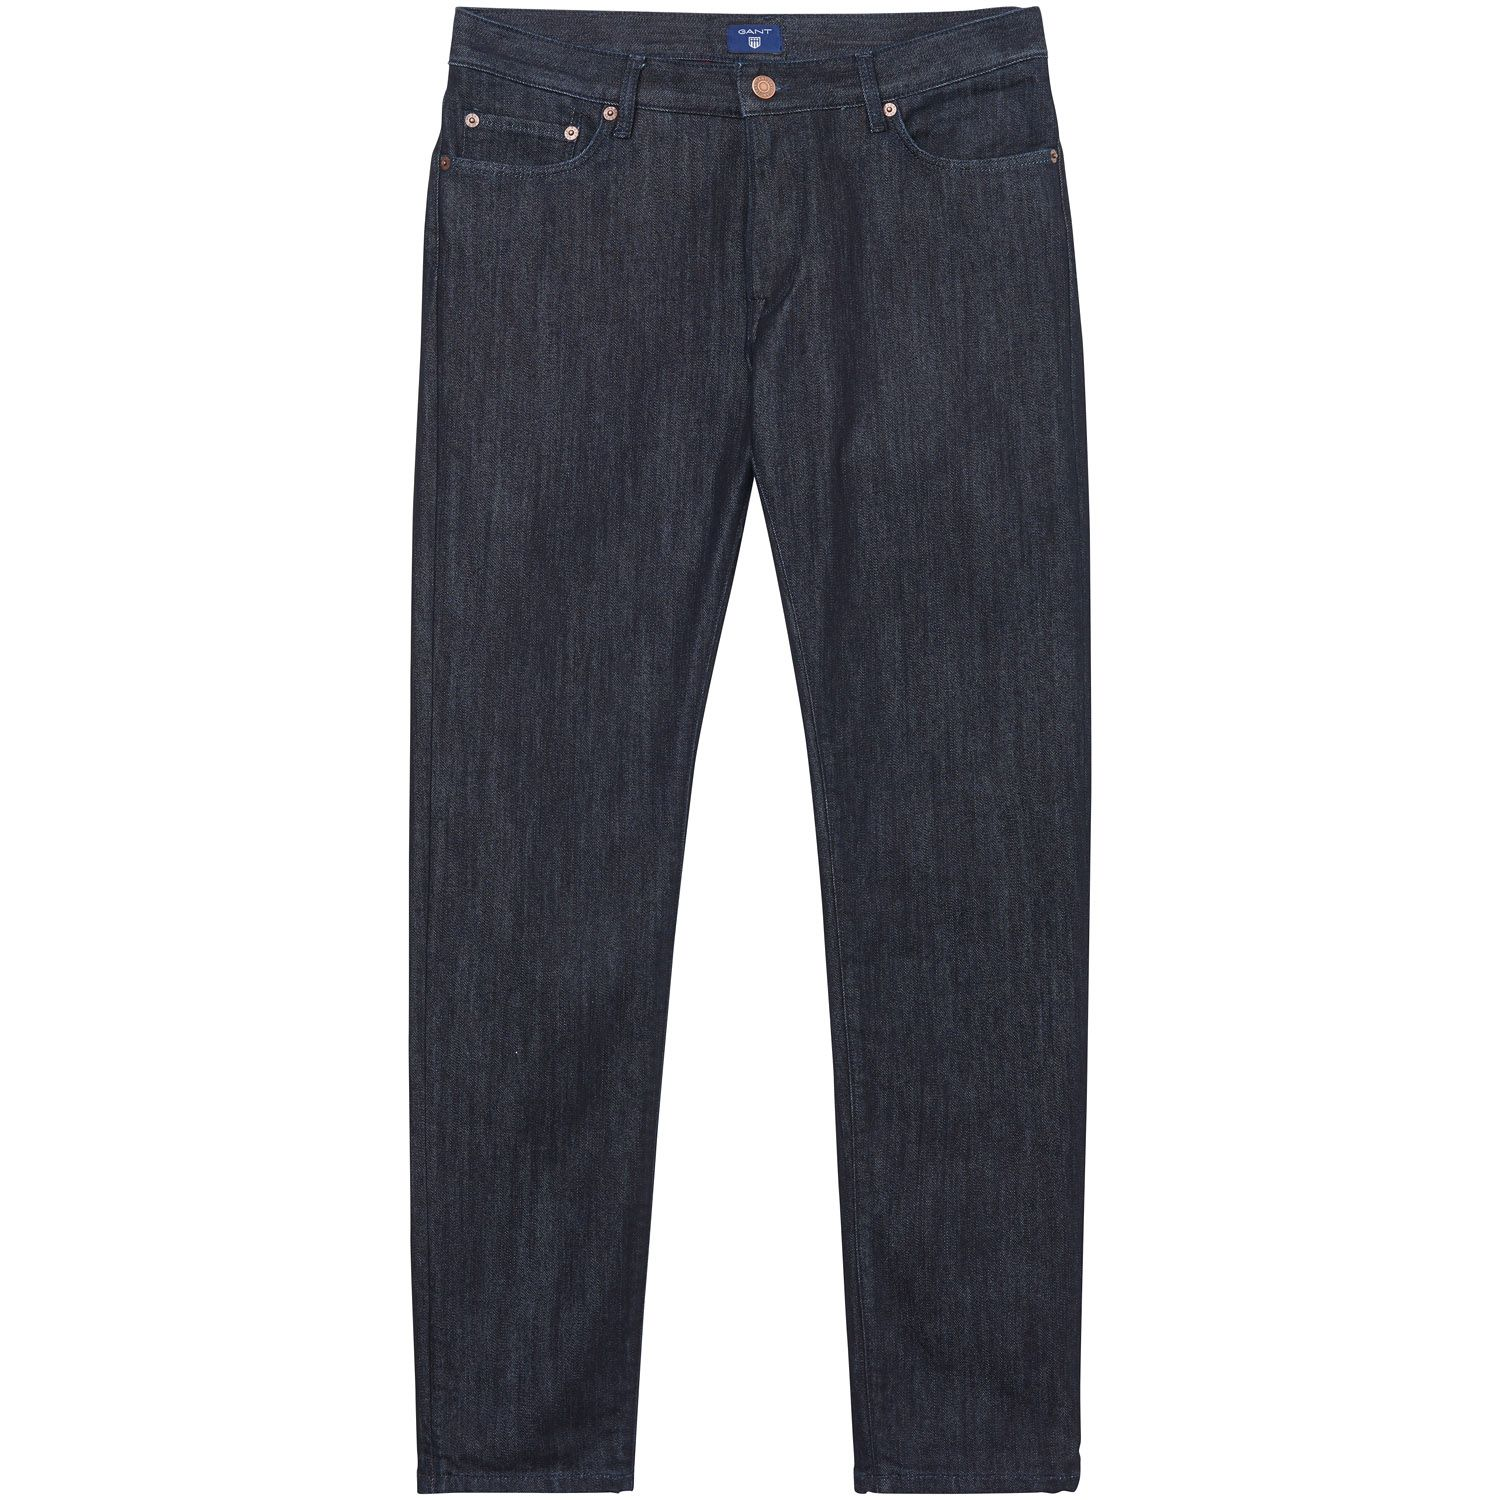 Gant Dark Blue GANT Slim Fit Commuter Jeans